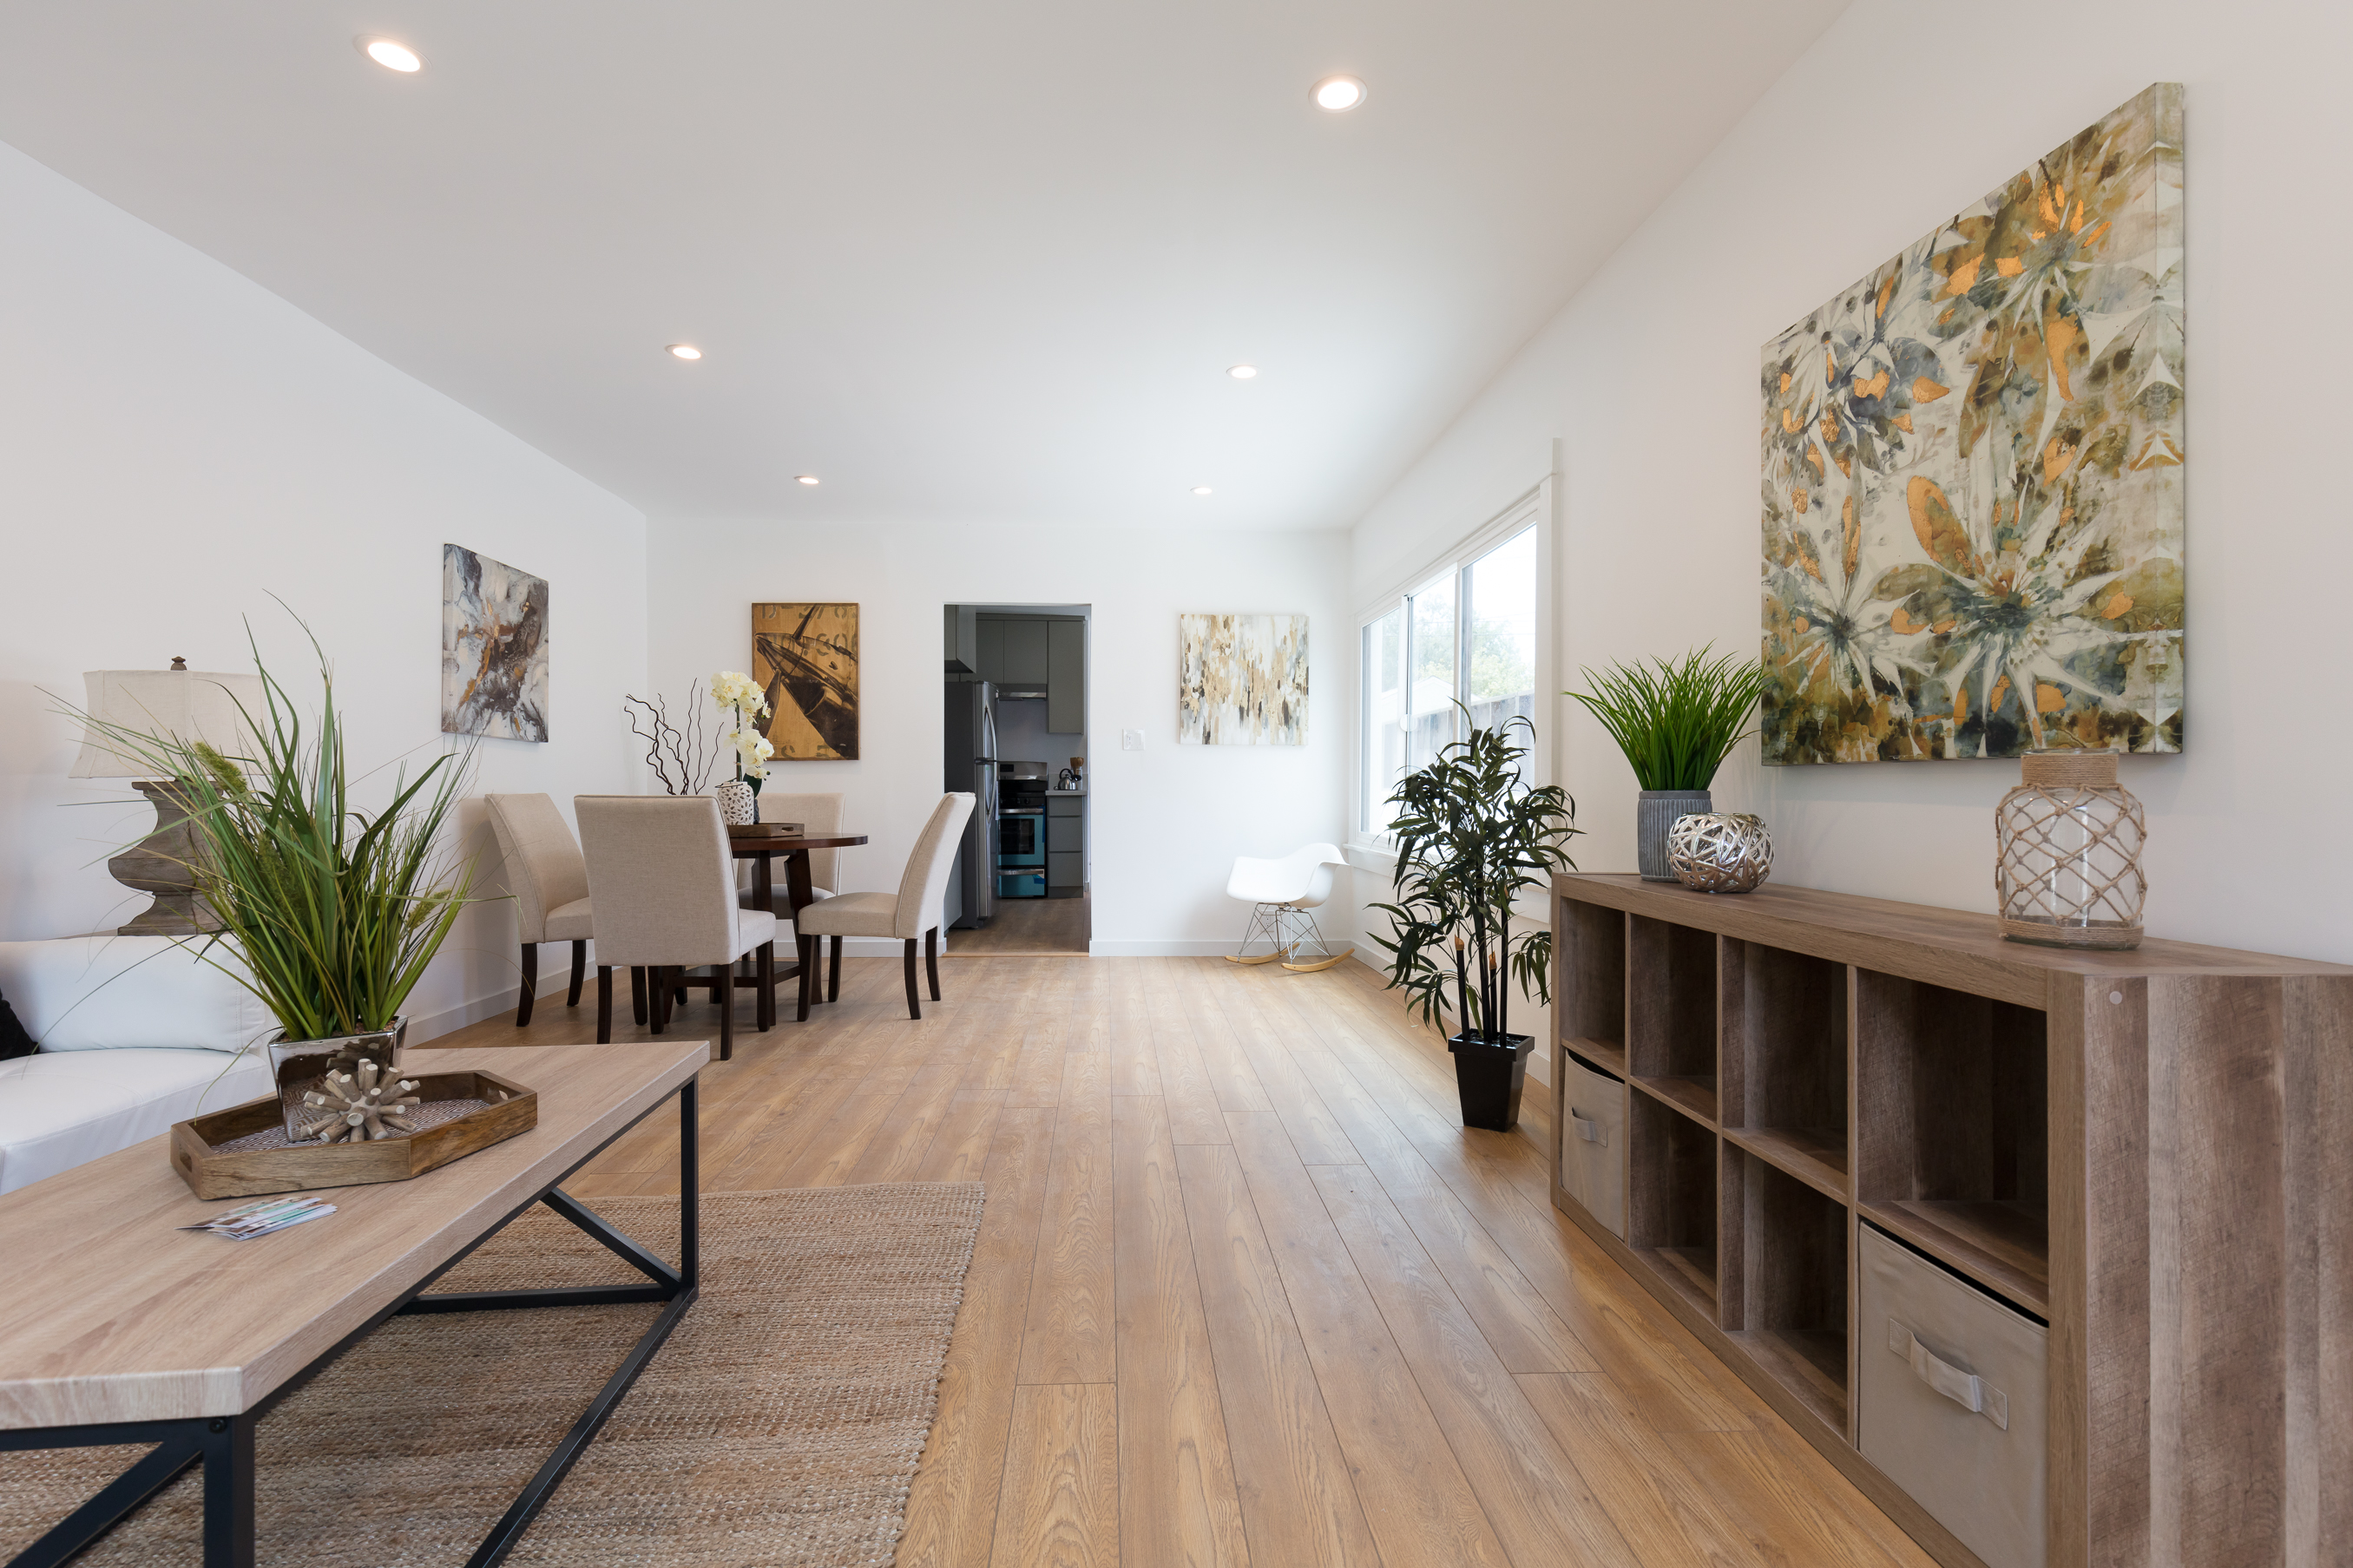 3777RosewoodSmall-2197